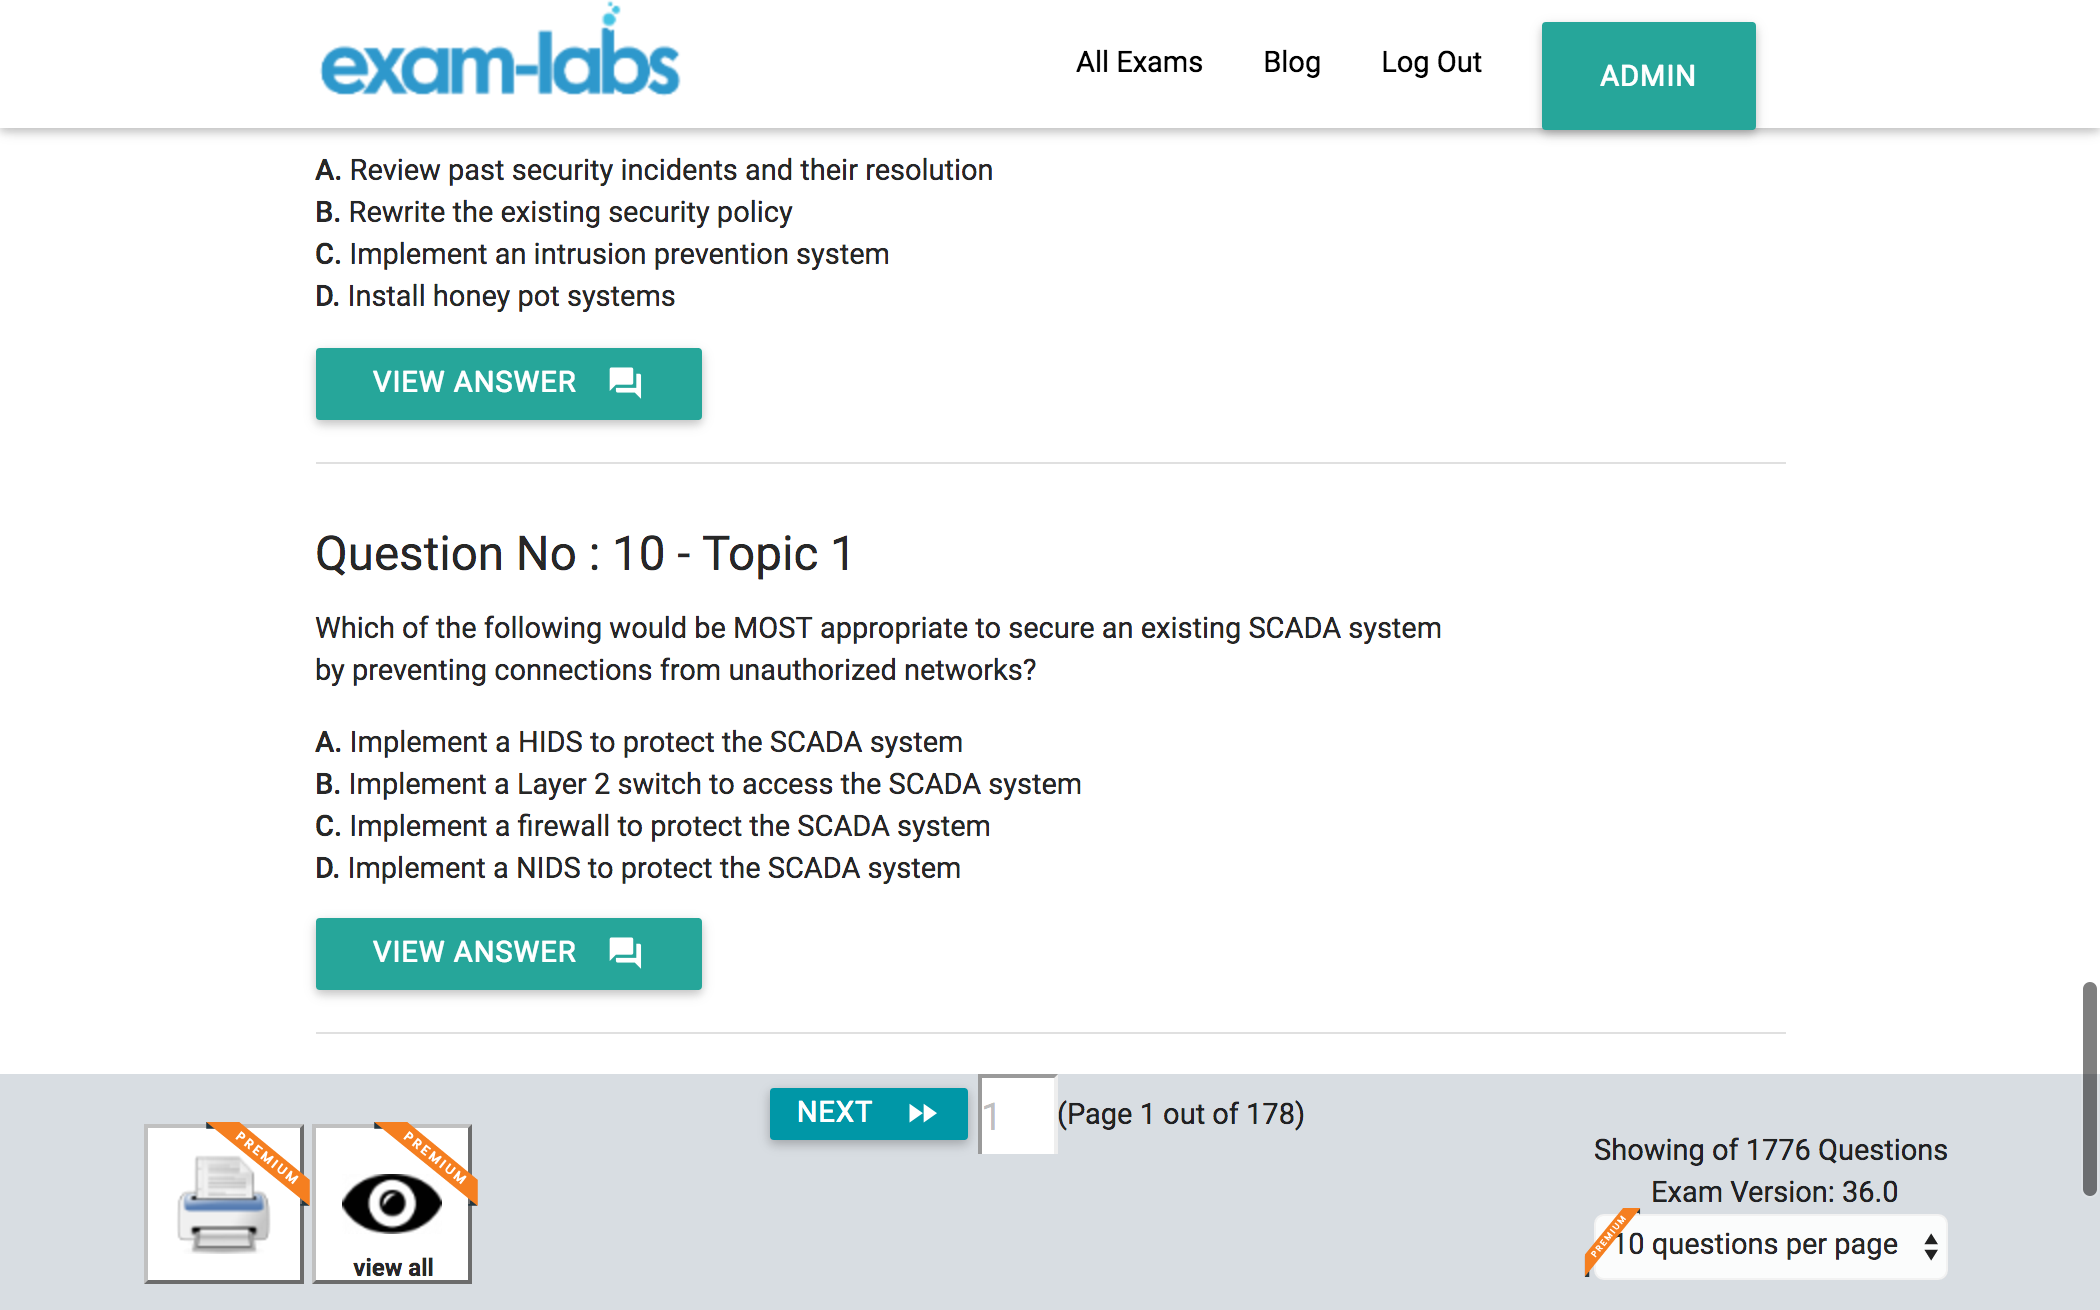 SY0-401 - CompTIA Practice Exam Questions - 100% Free | Exam-Labs